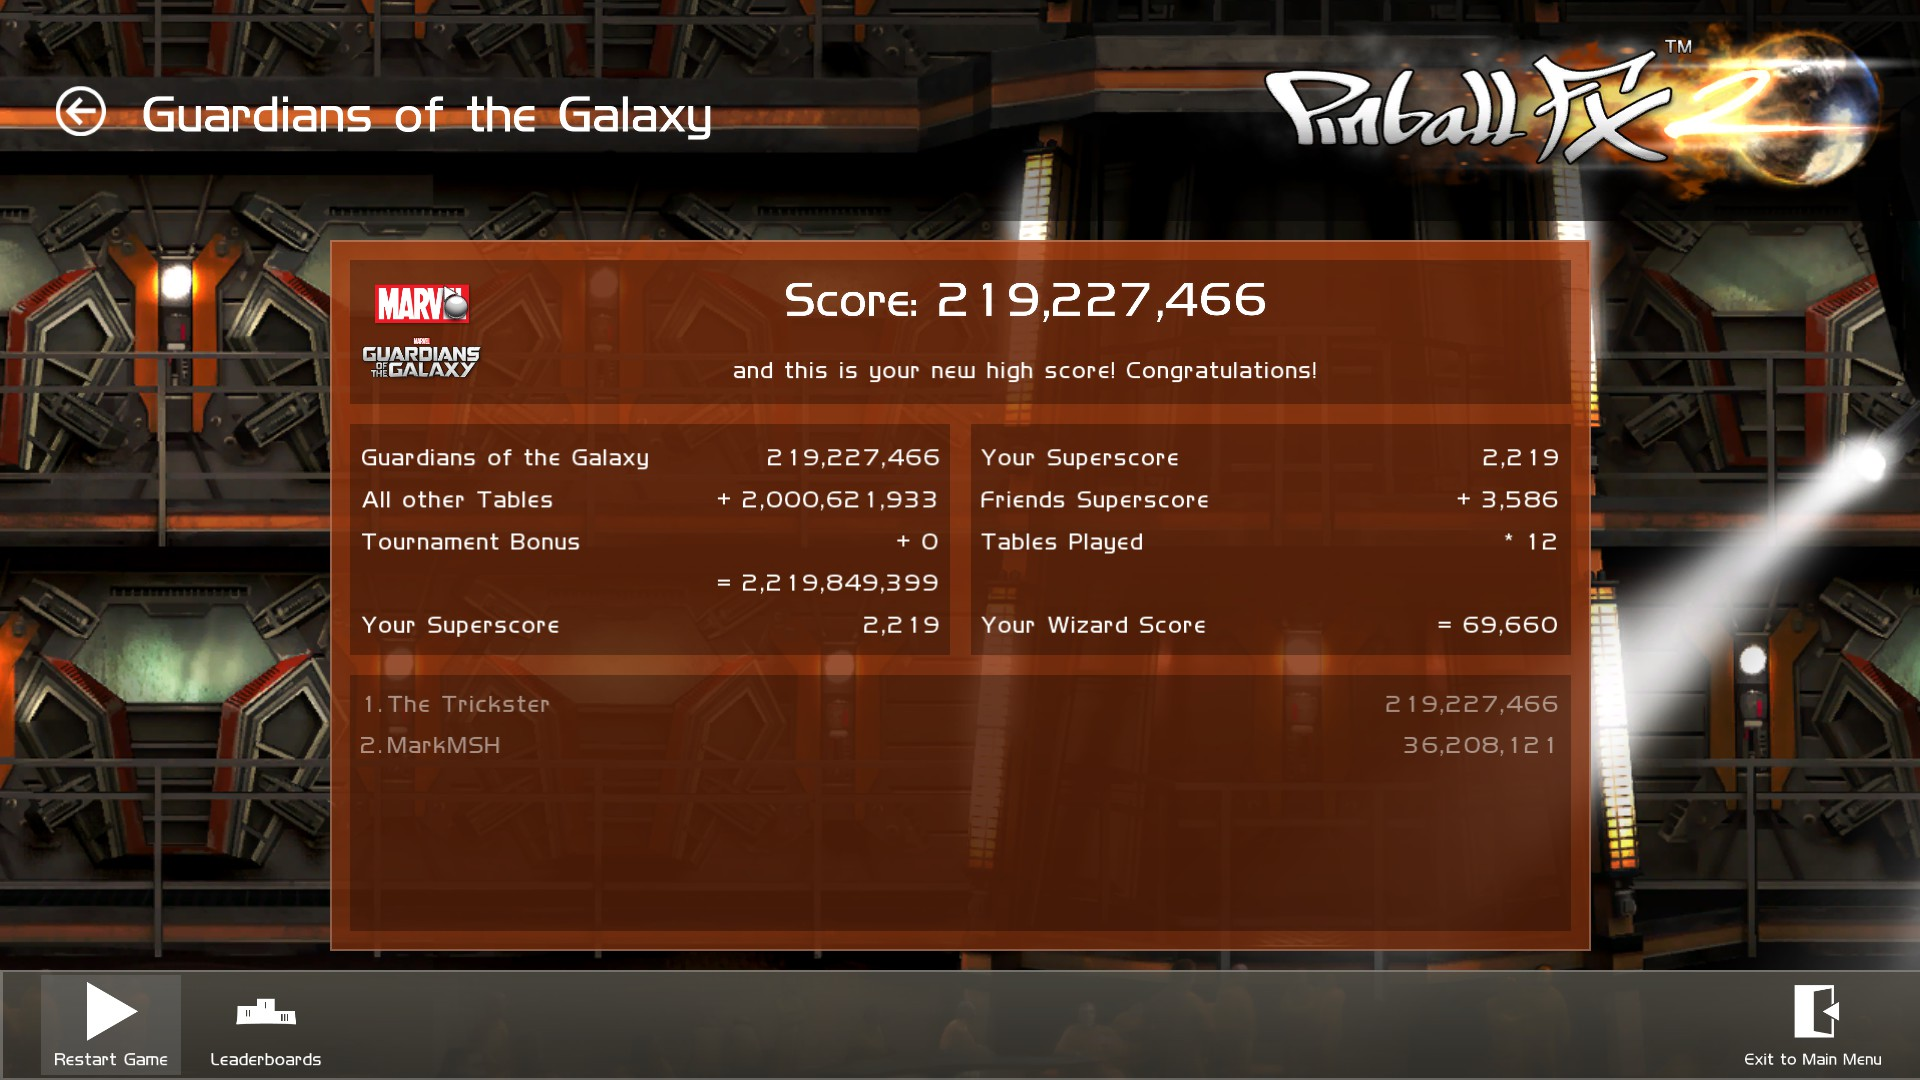 TheTrickster: Pinball FX 2: Marvel Guardians of the Galaxy (PC) 219,227,466 points on 2015-12-13 02:46:02